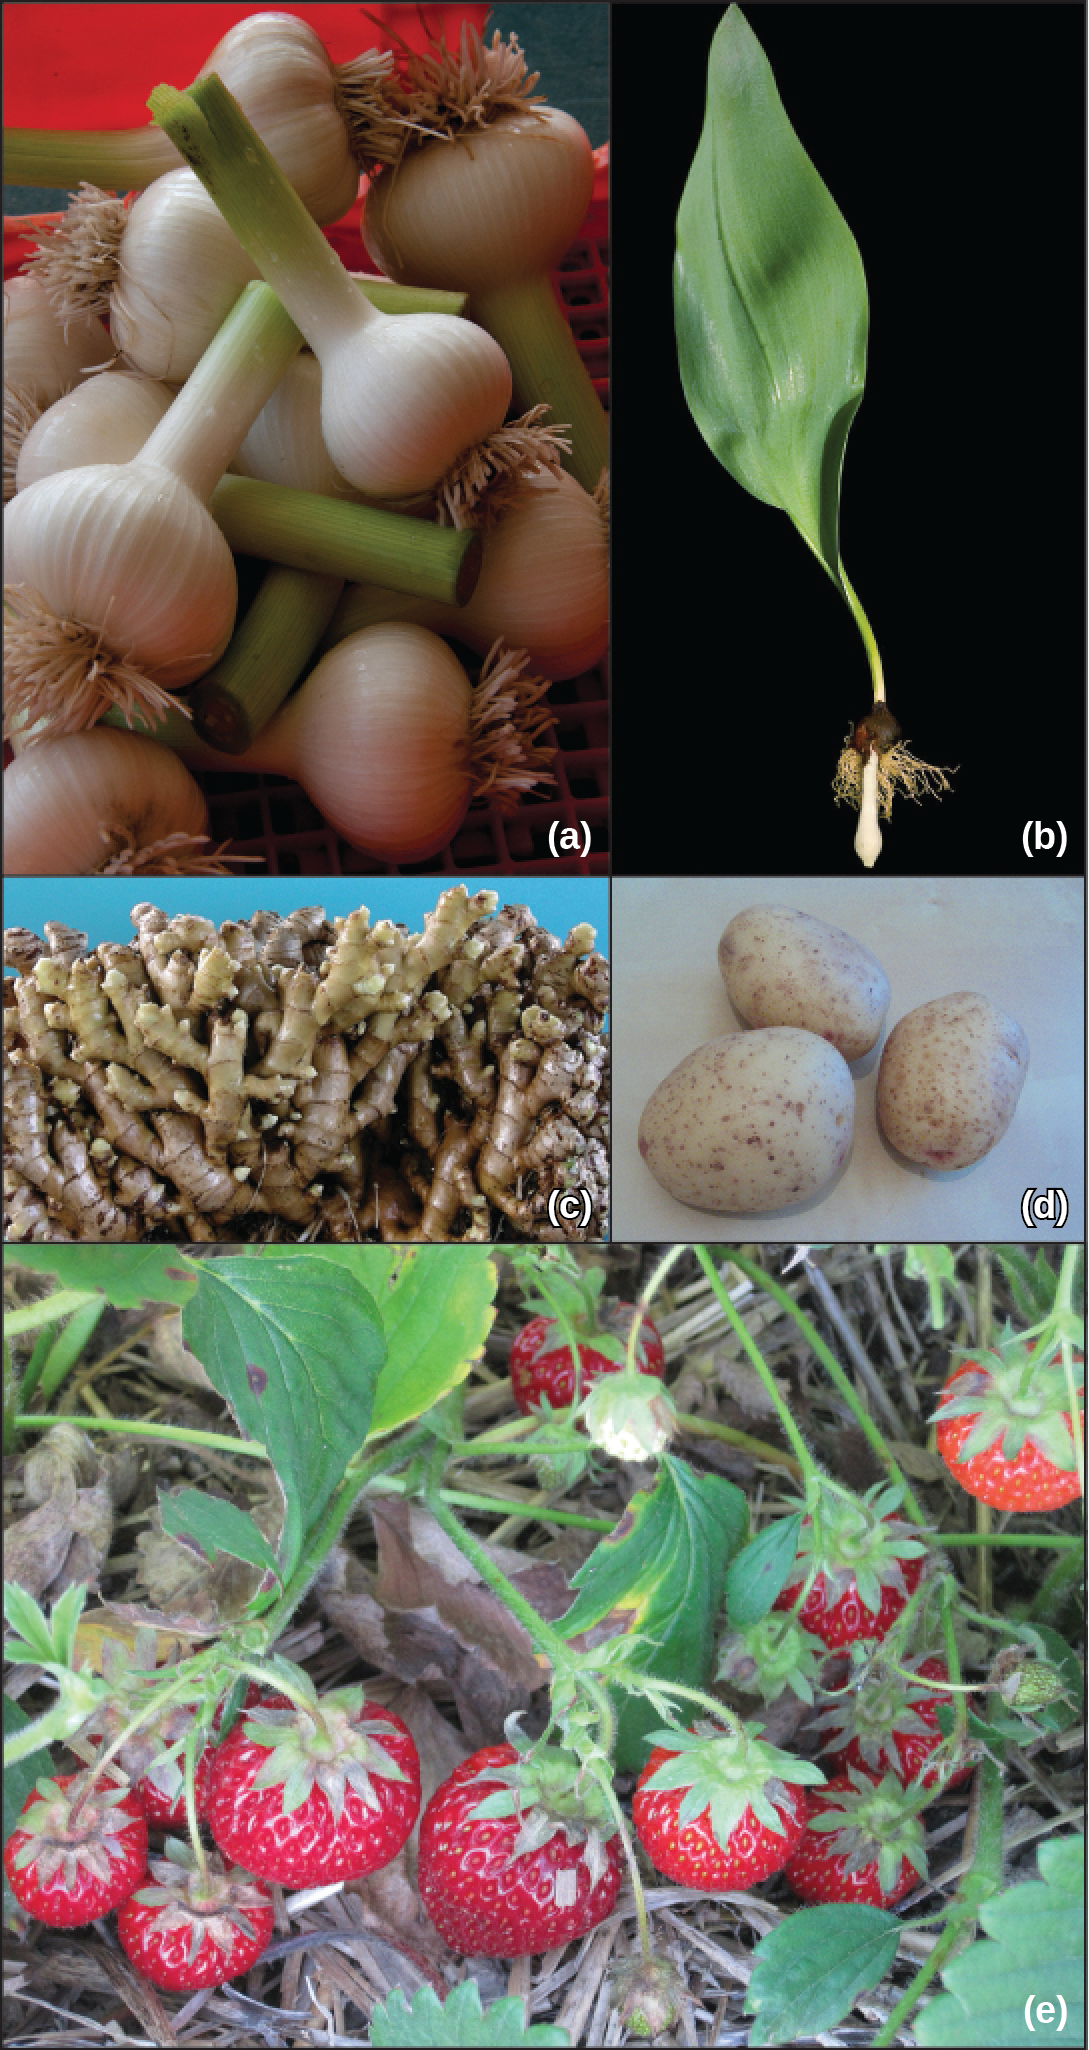 Photo A shows a garlic bulb, with a long tube extending upward.  Photo b shows a plant with a large green leaf whose stem turns into a root system.  Photo C shows a large bundle of ginger stems that are tubular shaped.  Photo D shows potatoes, which are somewhat oval shaped.  Photo E shows strawberries growing along the ground.